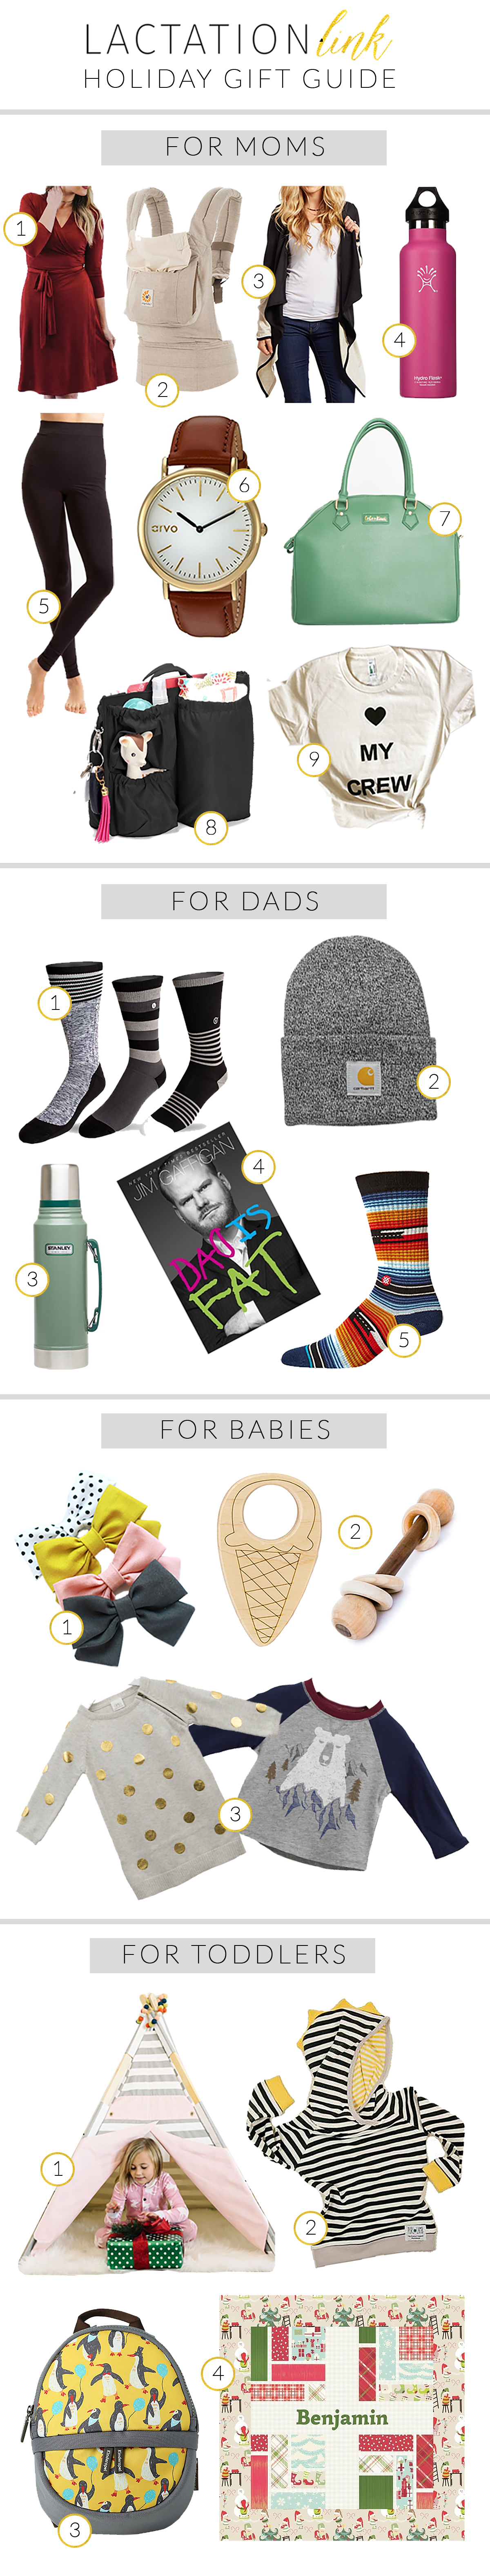 Holiday gift guide for the home family, including super cute ideas for moms, dads, babies, and toddlers.